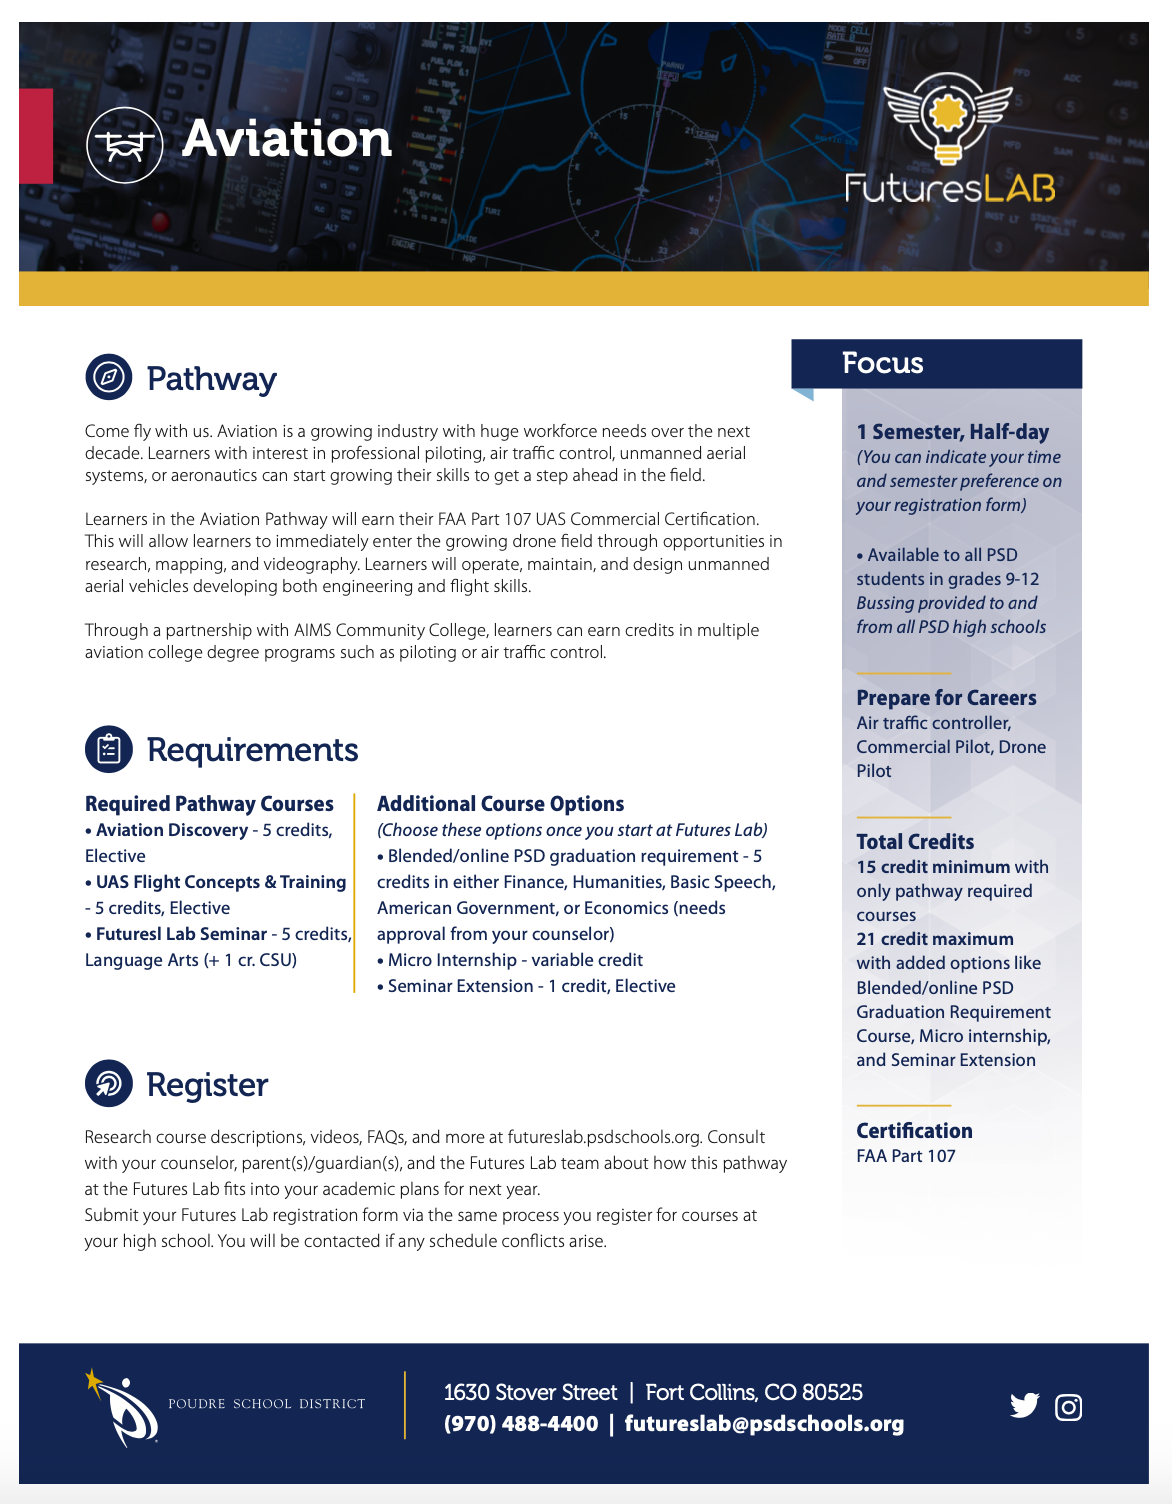 Aviation Pathway flyer